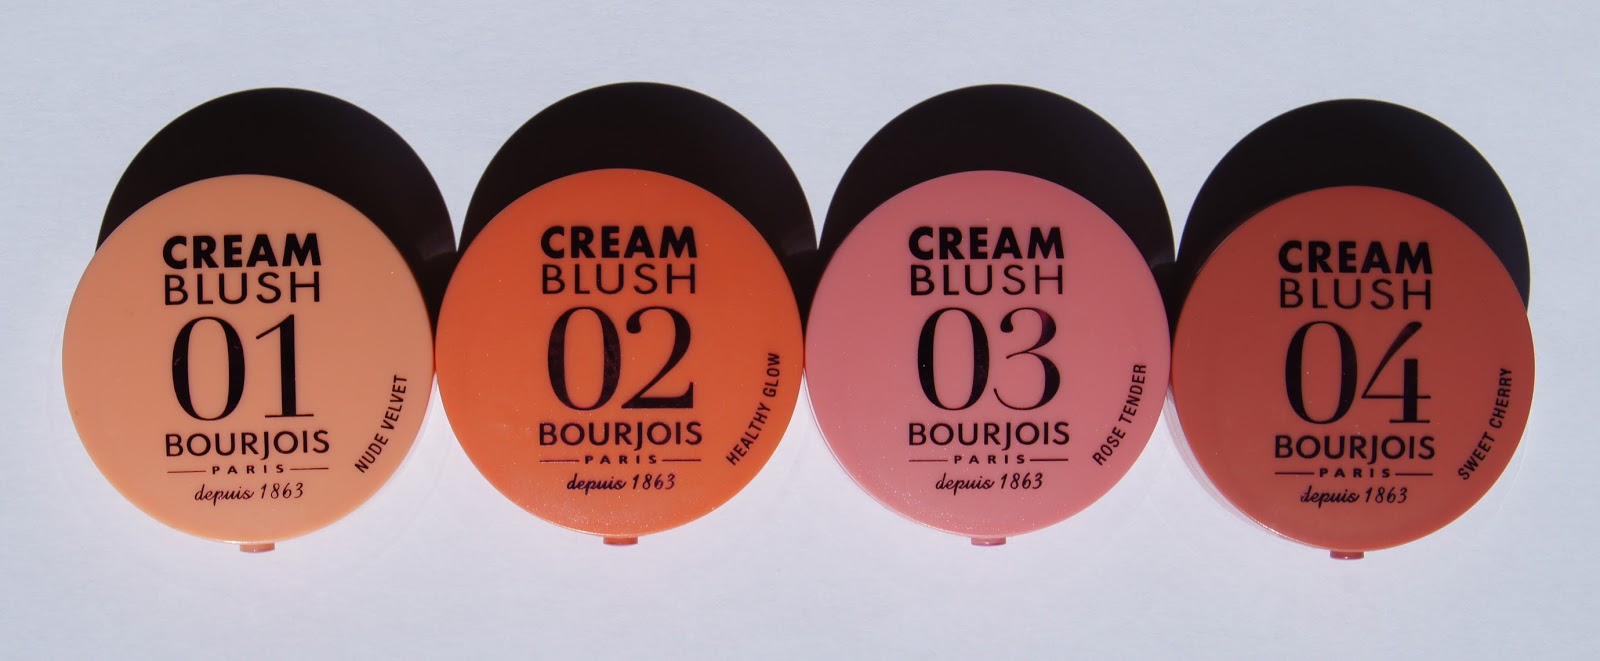 bourgeois little round pot cream blushes review